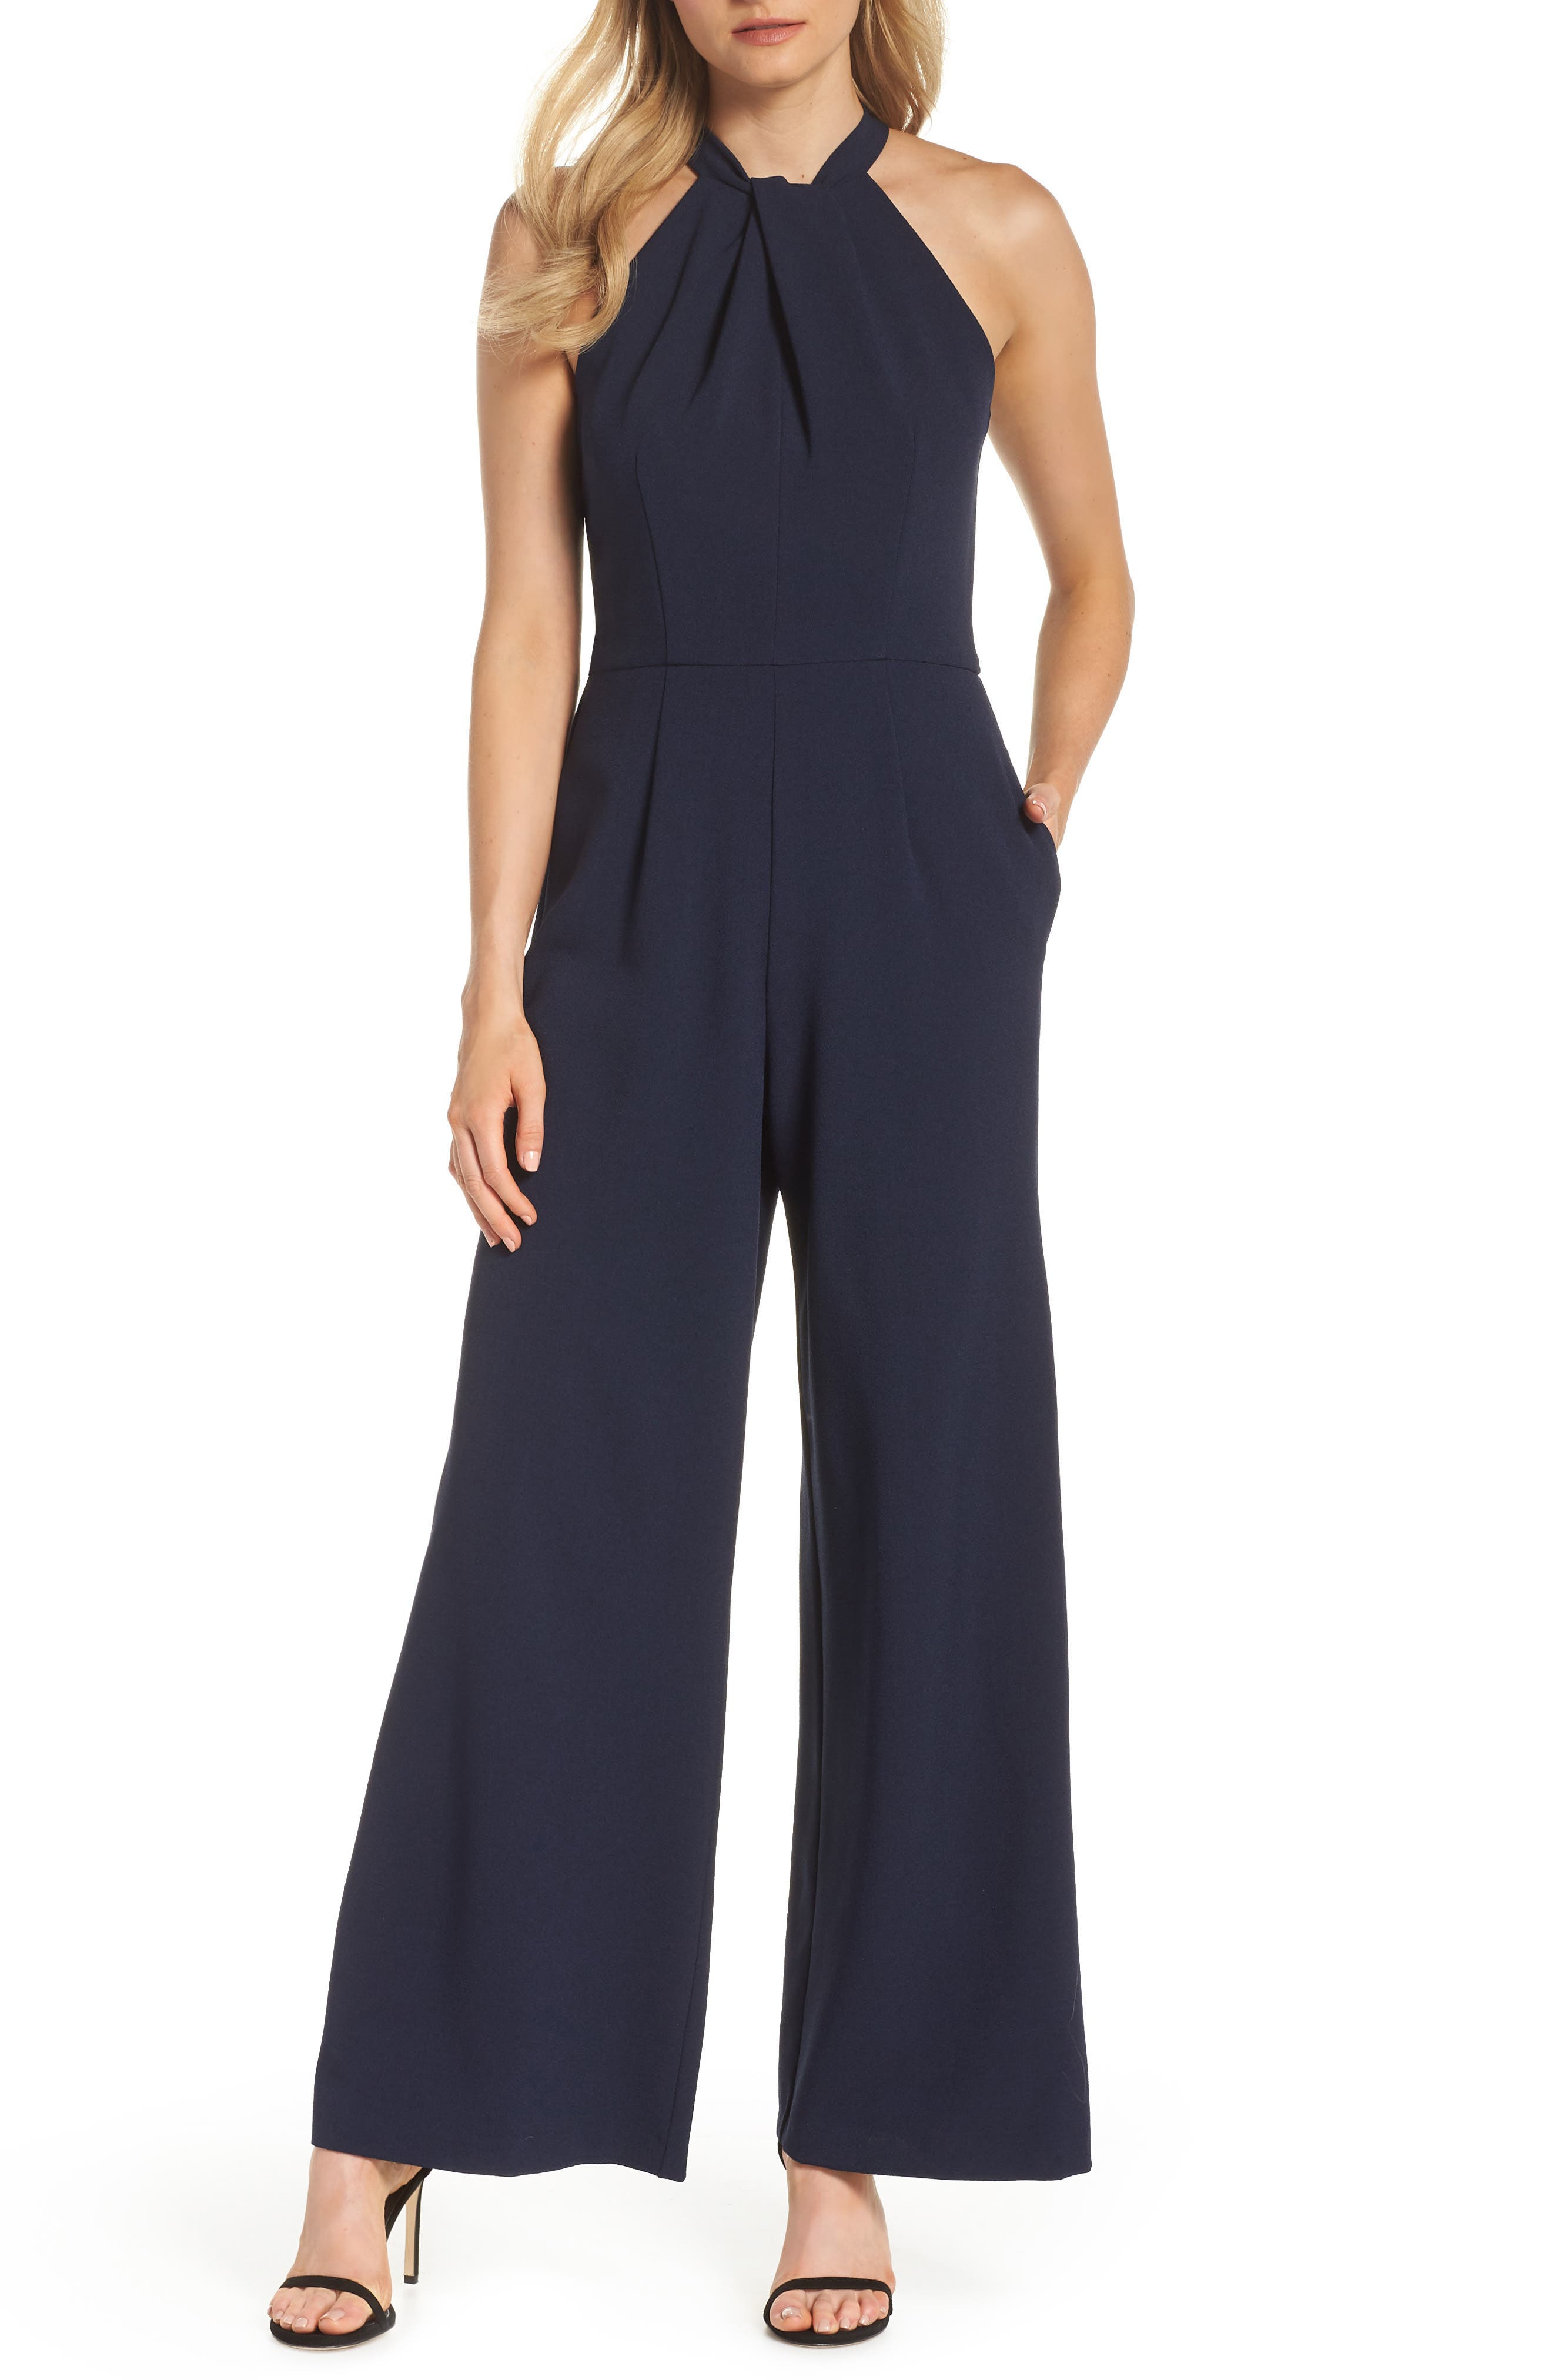 JULIA JORDAN, Halter Wide Leg Jumpsuit, Main thumbnail 1, color, NAVY